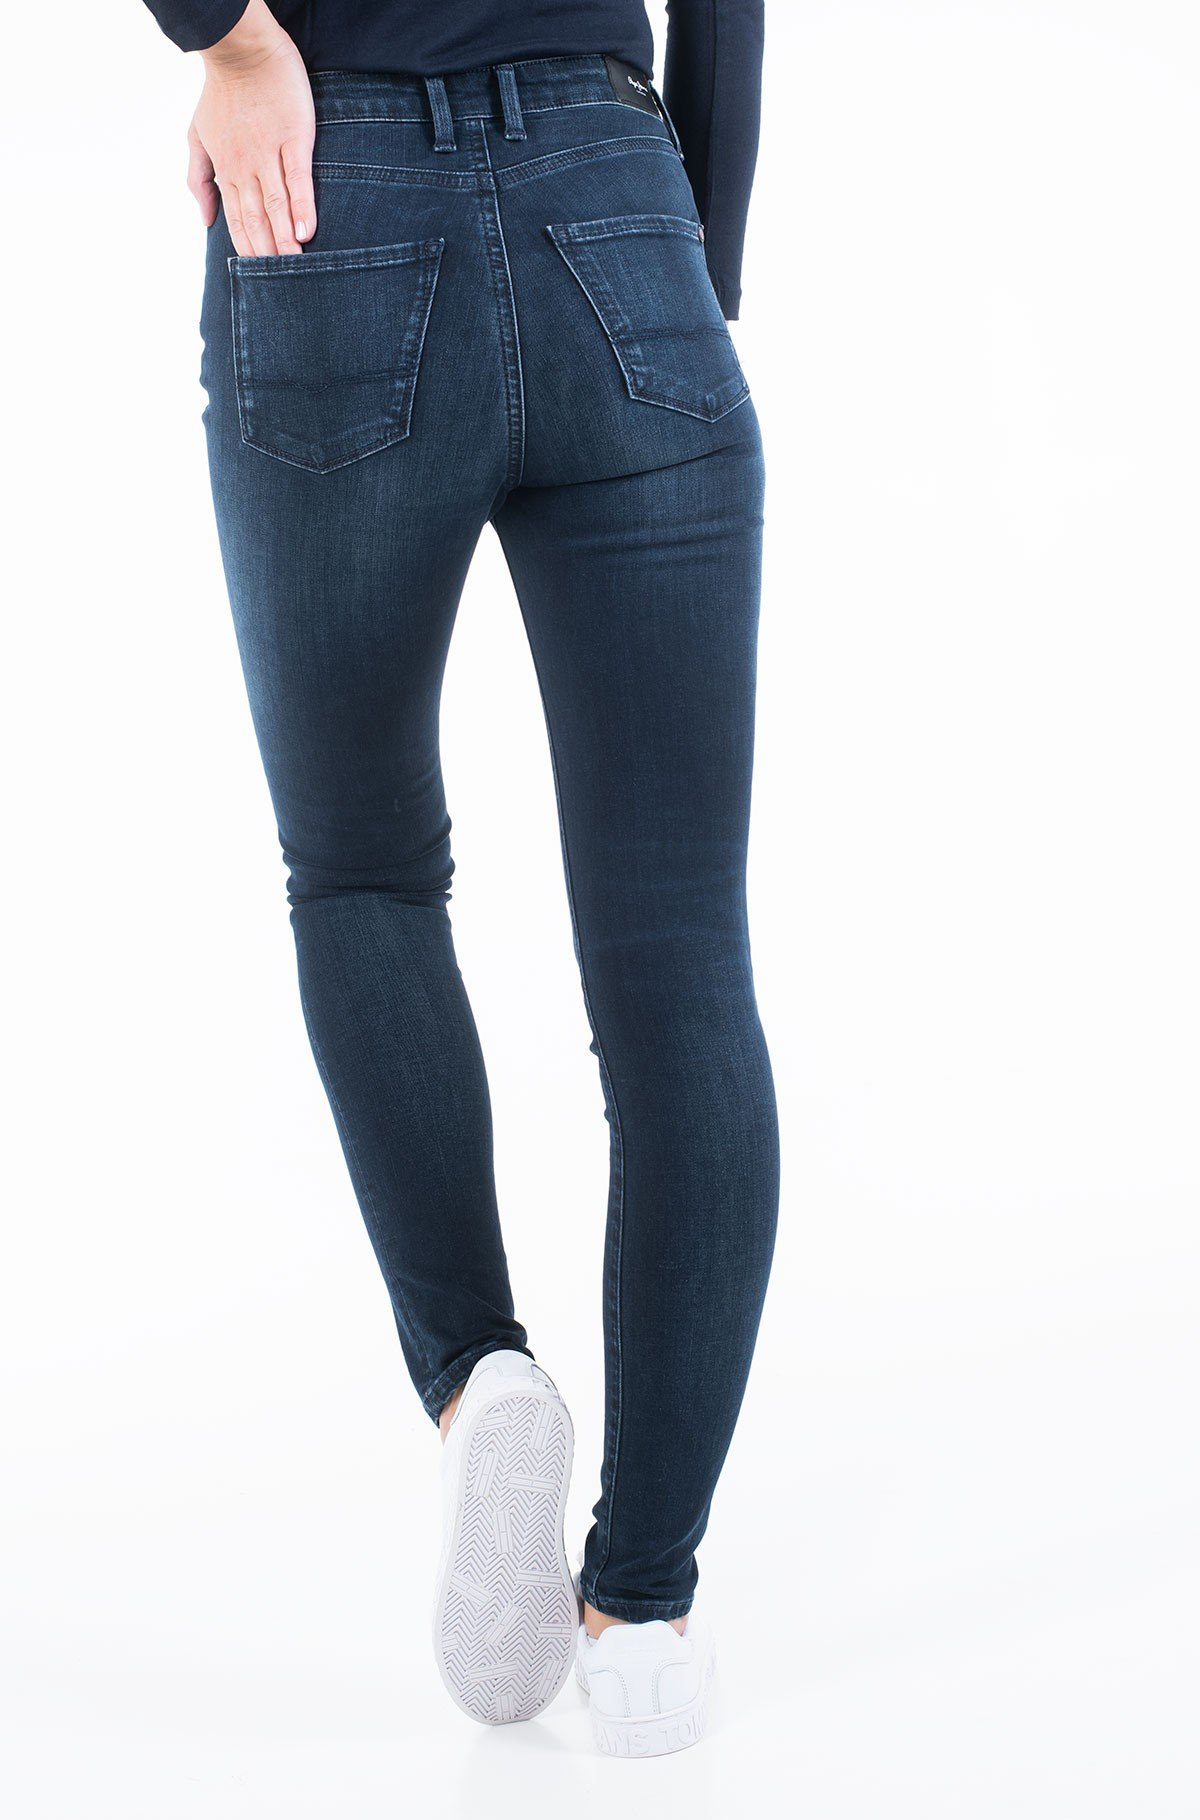 Jeans DION/PL202285DC6-full-3